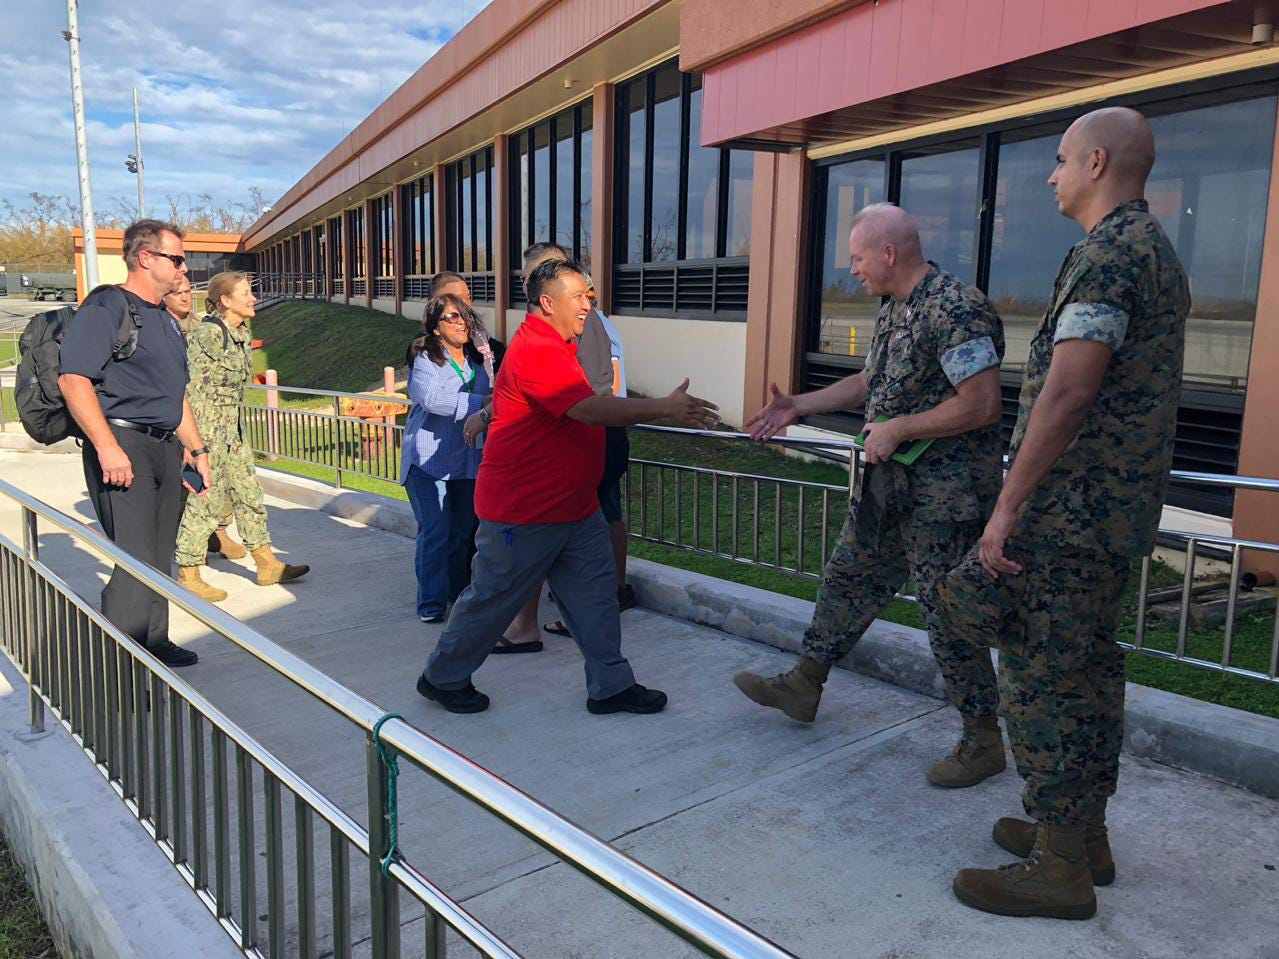 TINIAN, Commonwealth of the Northern Mariana Islands (Oct. 28, 2018) — Commonwealth of the Northern Mariana Islands Gov. Ralph Torres meets with Col. Brent Bien, Marine Corps Activity Guam officer in charge, and Federal Emergency Management Agency officials to discuss relief efforts in Tinian following Super Typhoon Yutu Oct. 28. Service members from Joint Region Marianas and Indo-Pacific Command are providing Department of Defense support to the CNMI's civil and local officials as part of the FEMA-supported Super Typhoon Yutu recovery effort.